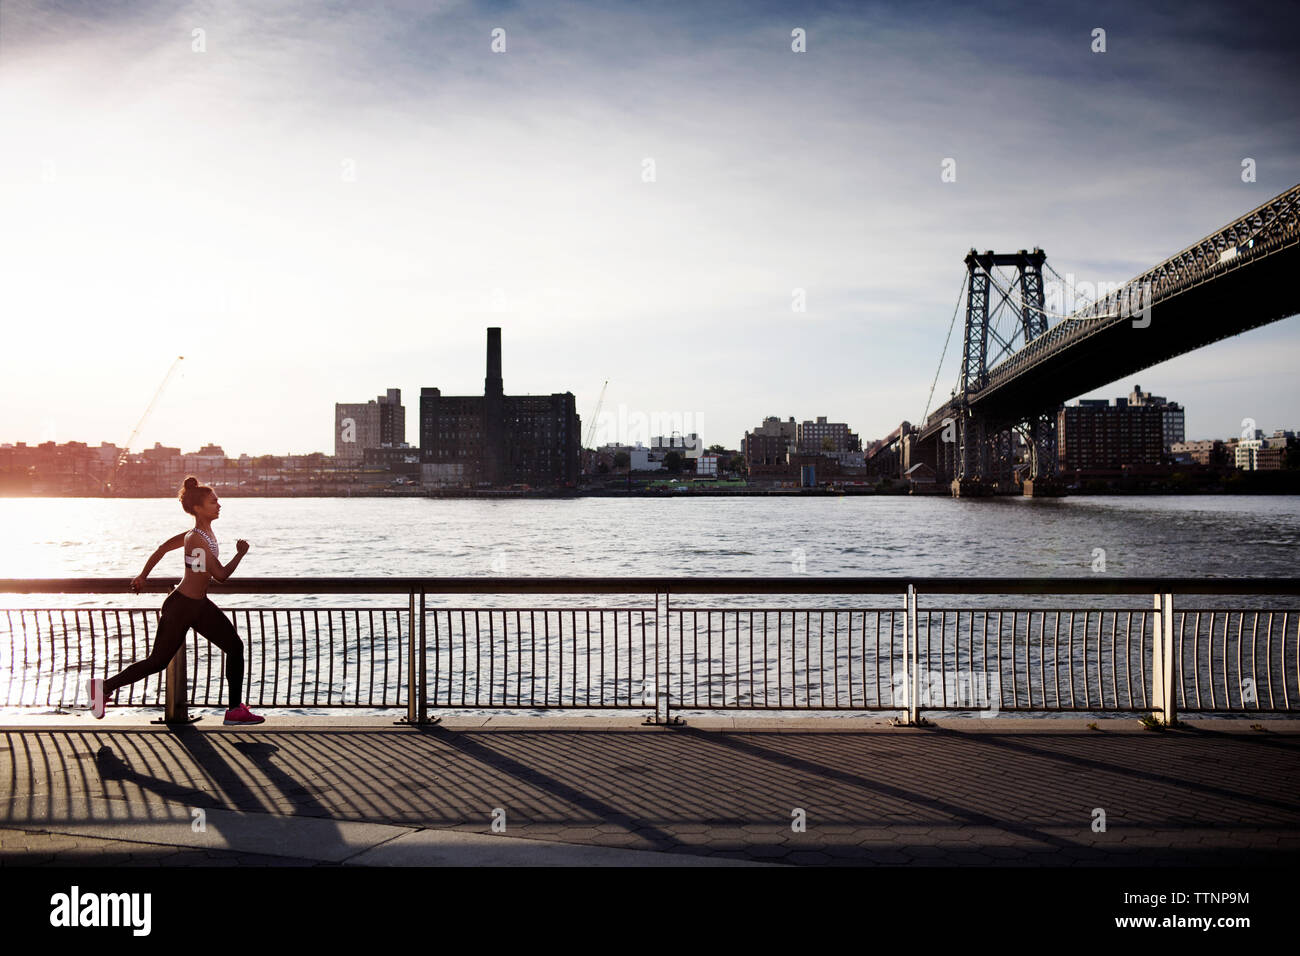 Determined woman jogging on promenade with Williamsburg Bridge in background - Stock Photo